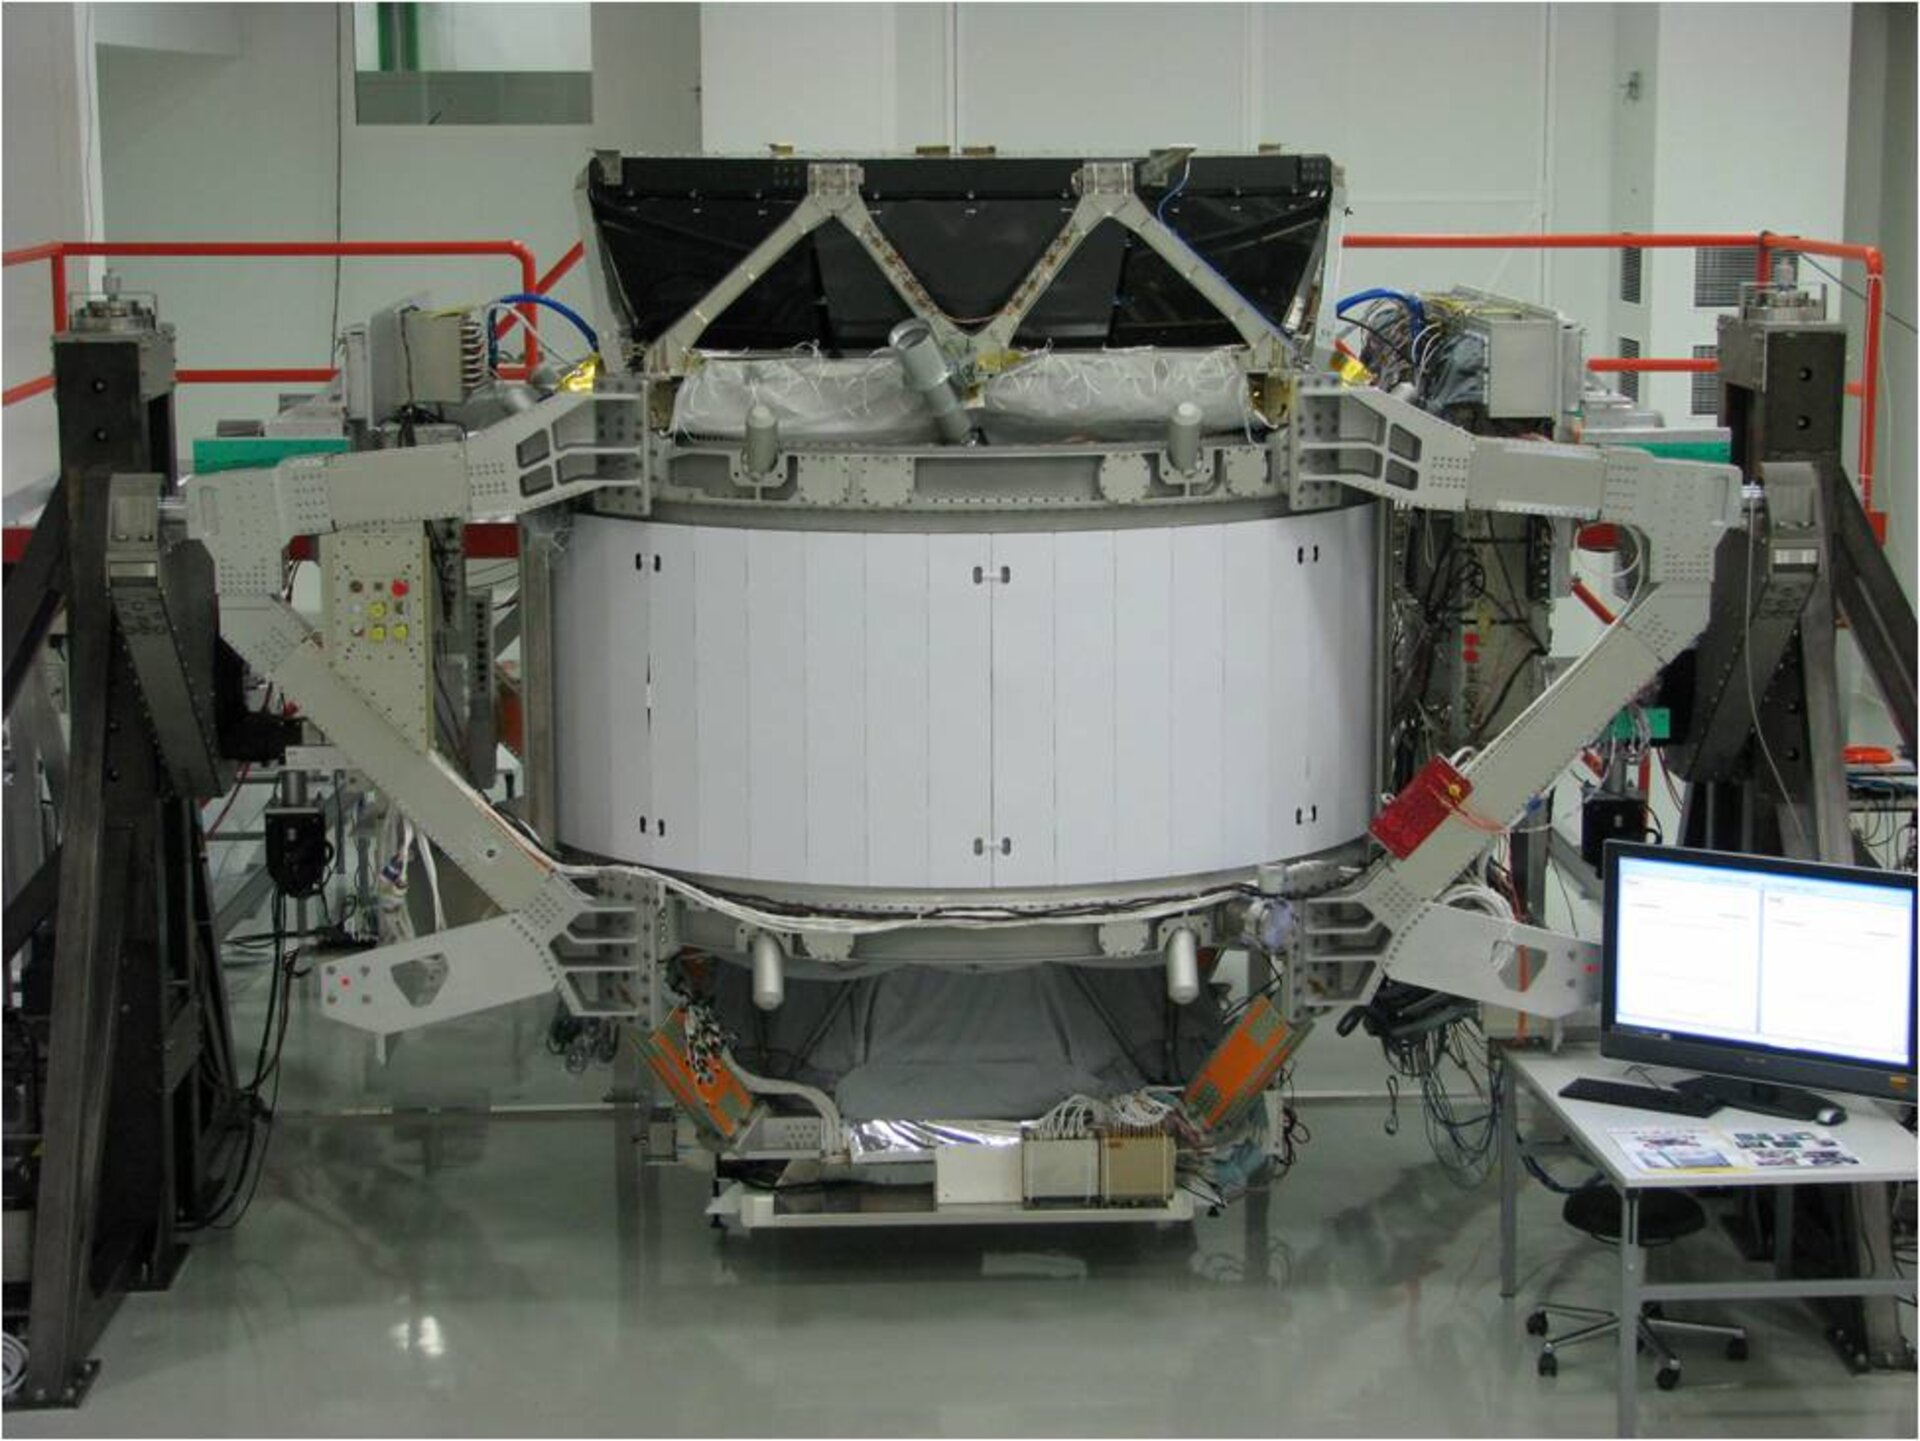 AMS-2 during integration activities at CERN facility in Switzerland